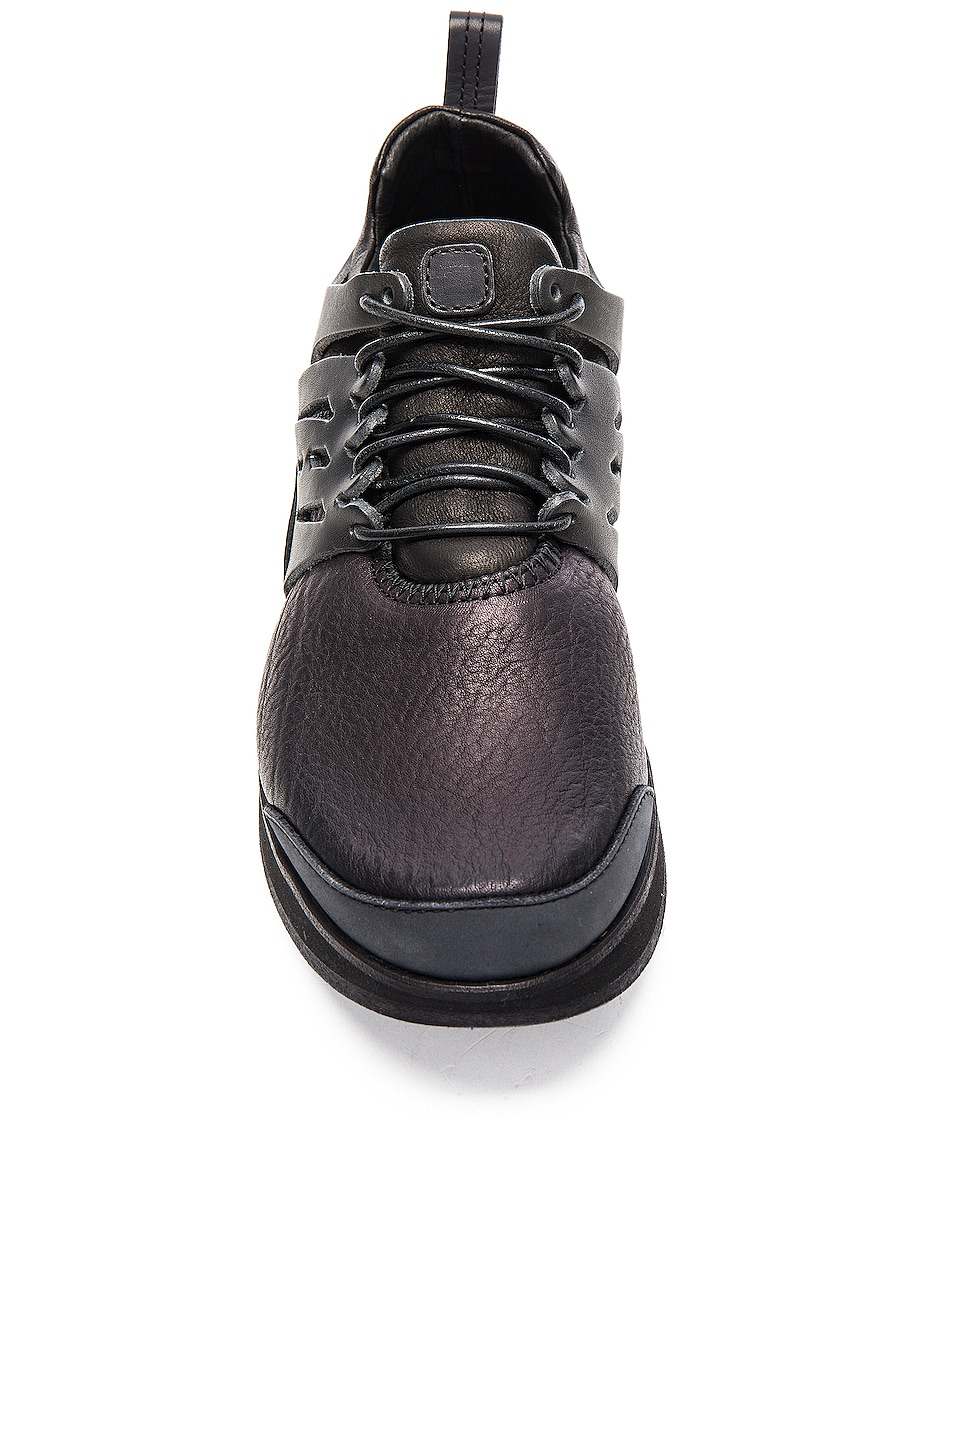 Image 4 of Hender Scheme Manual Industrial Product 12 in Black